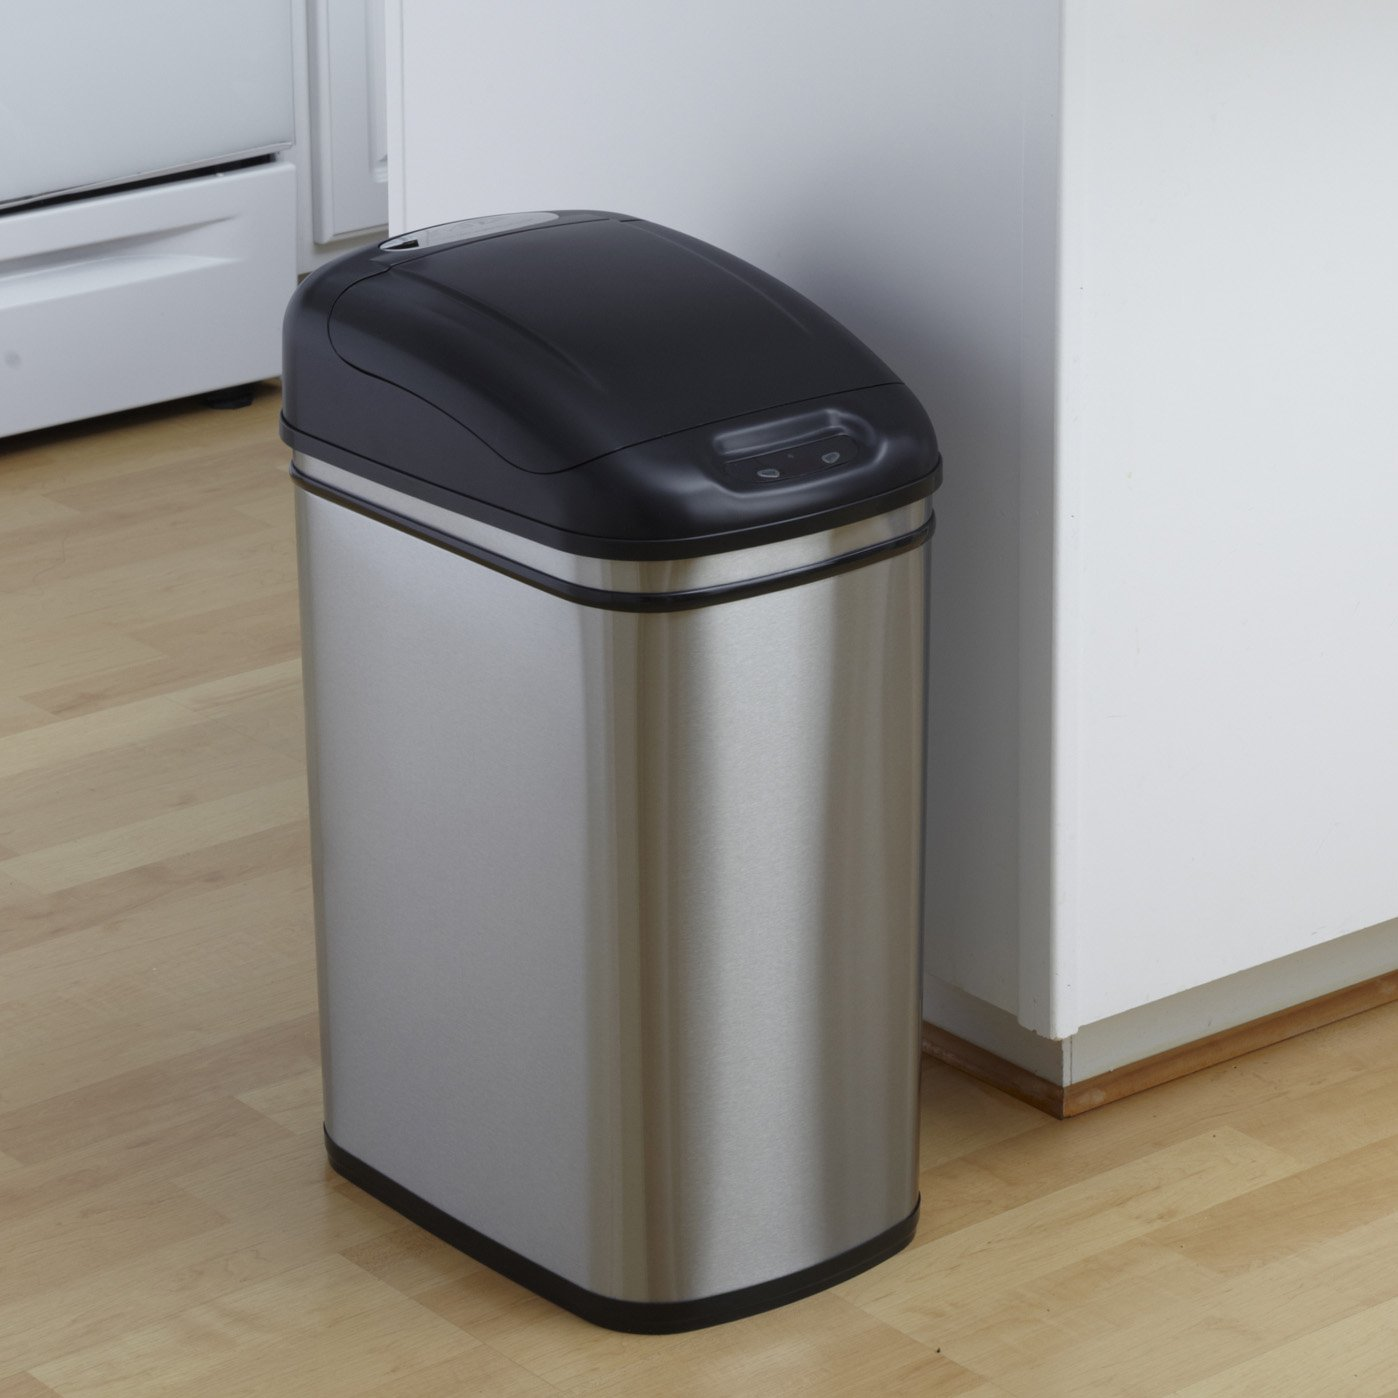 Nine Stars DZT 30 1 Touchless Stainless Steel 7.9 Gallon Trash Can    Walmart.com